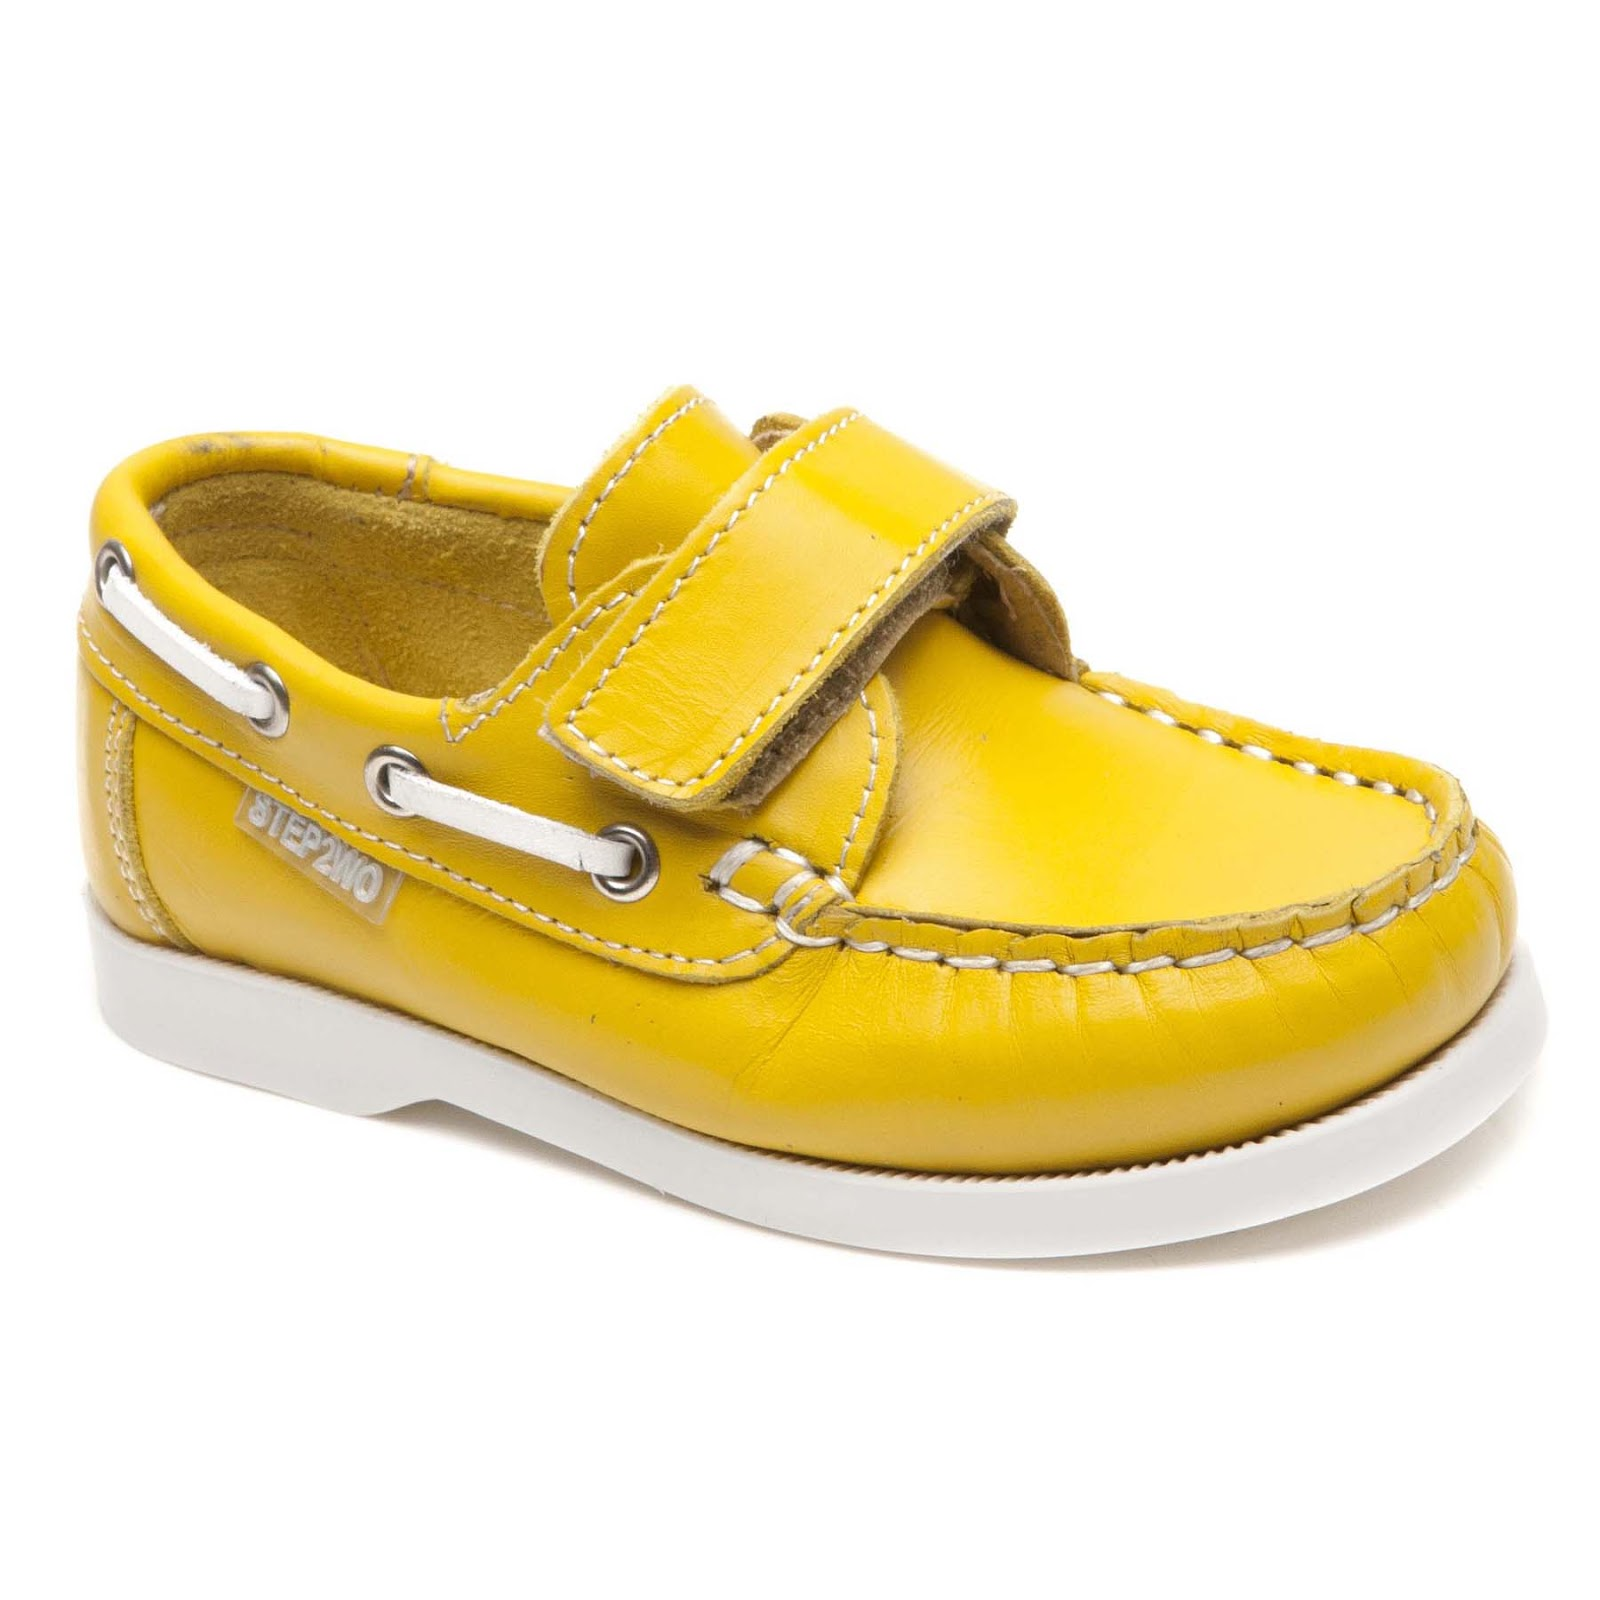 Noble 2 - Velcro Boat Shoe